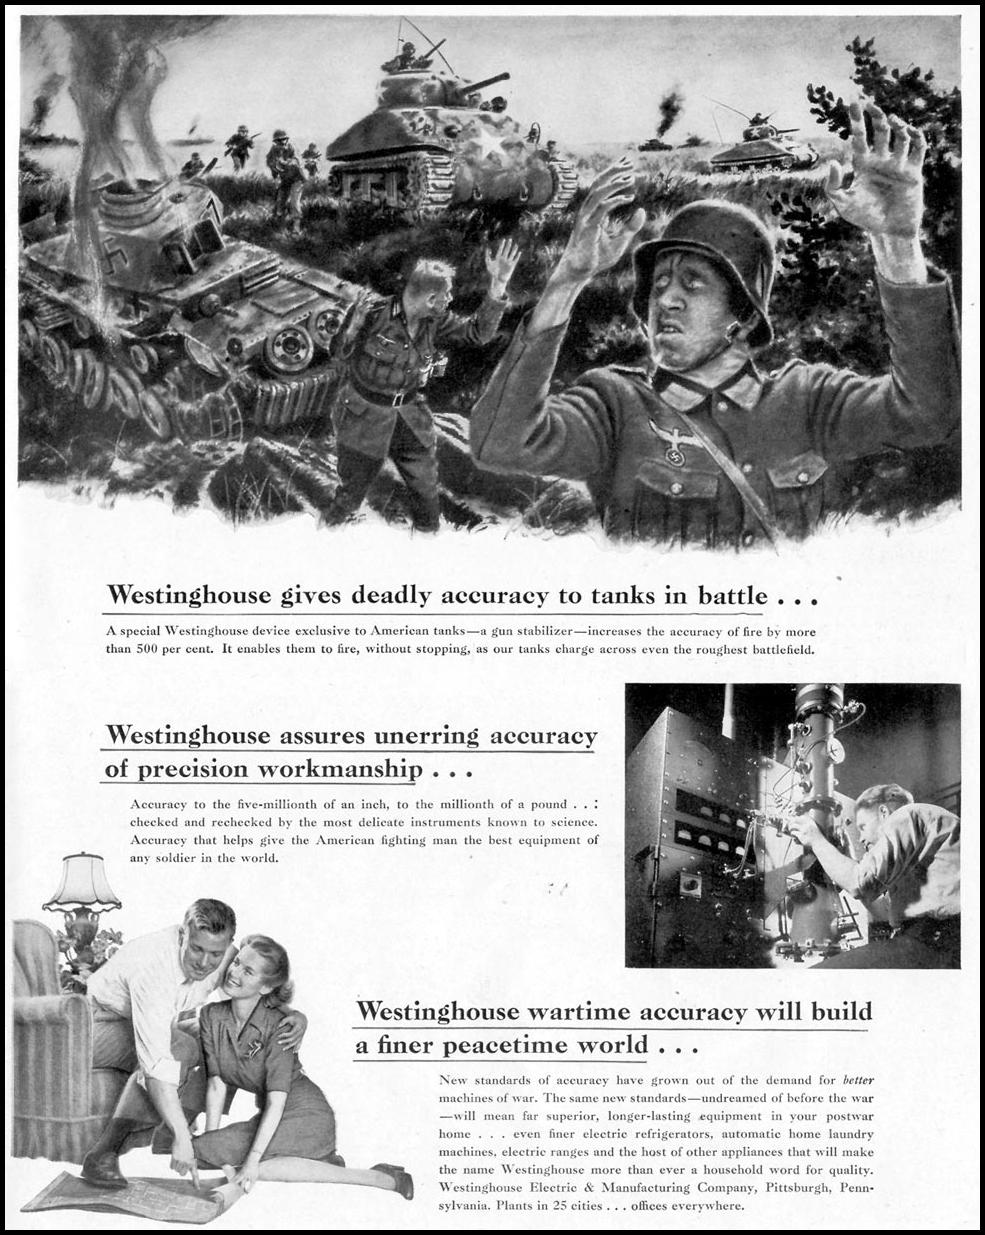 WESTINGHOUSE WAR PRODUCTION